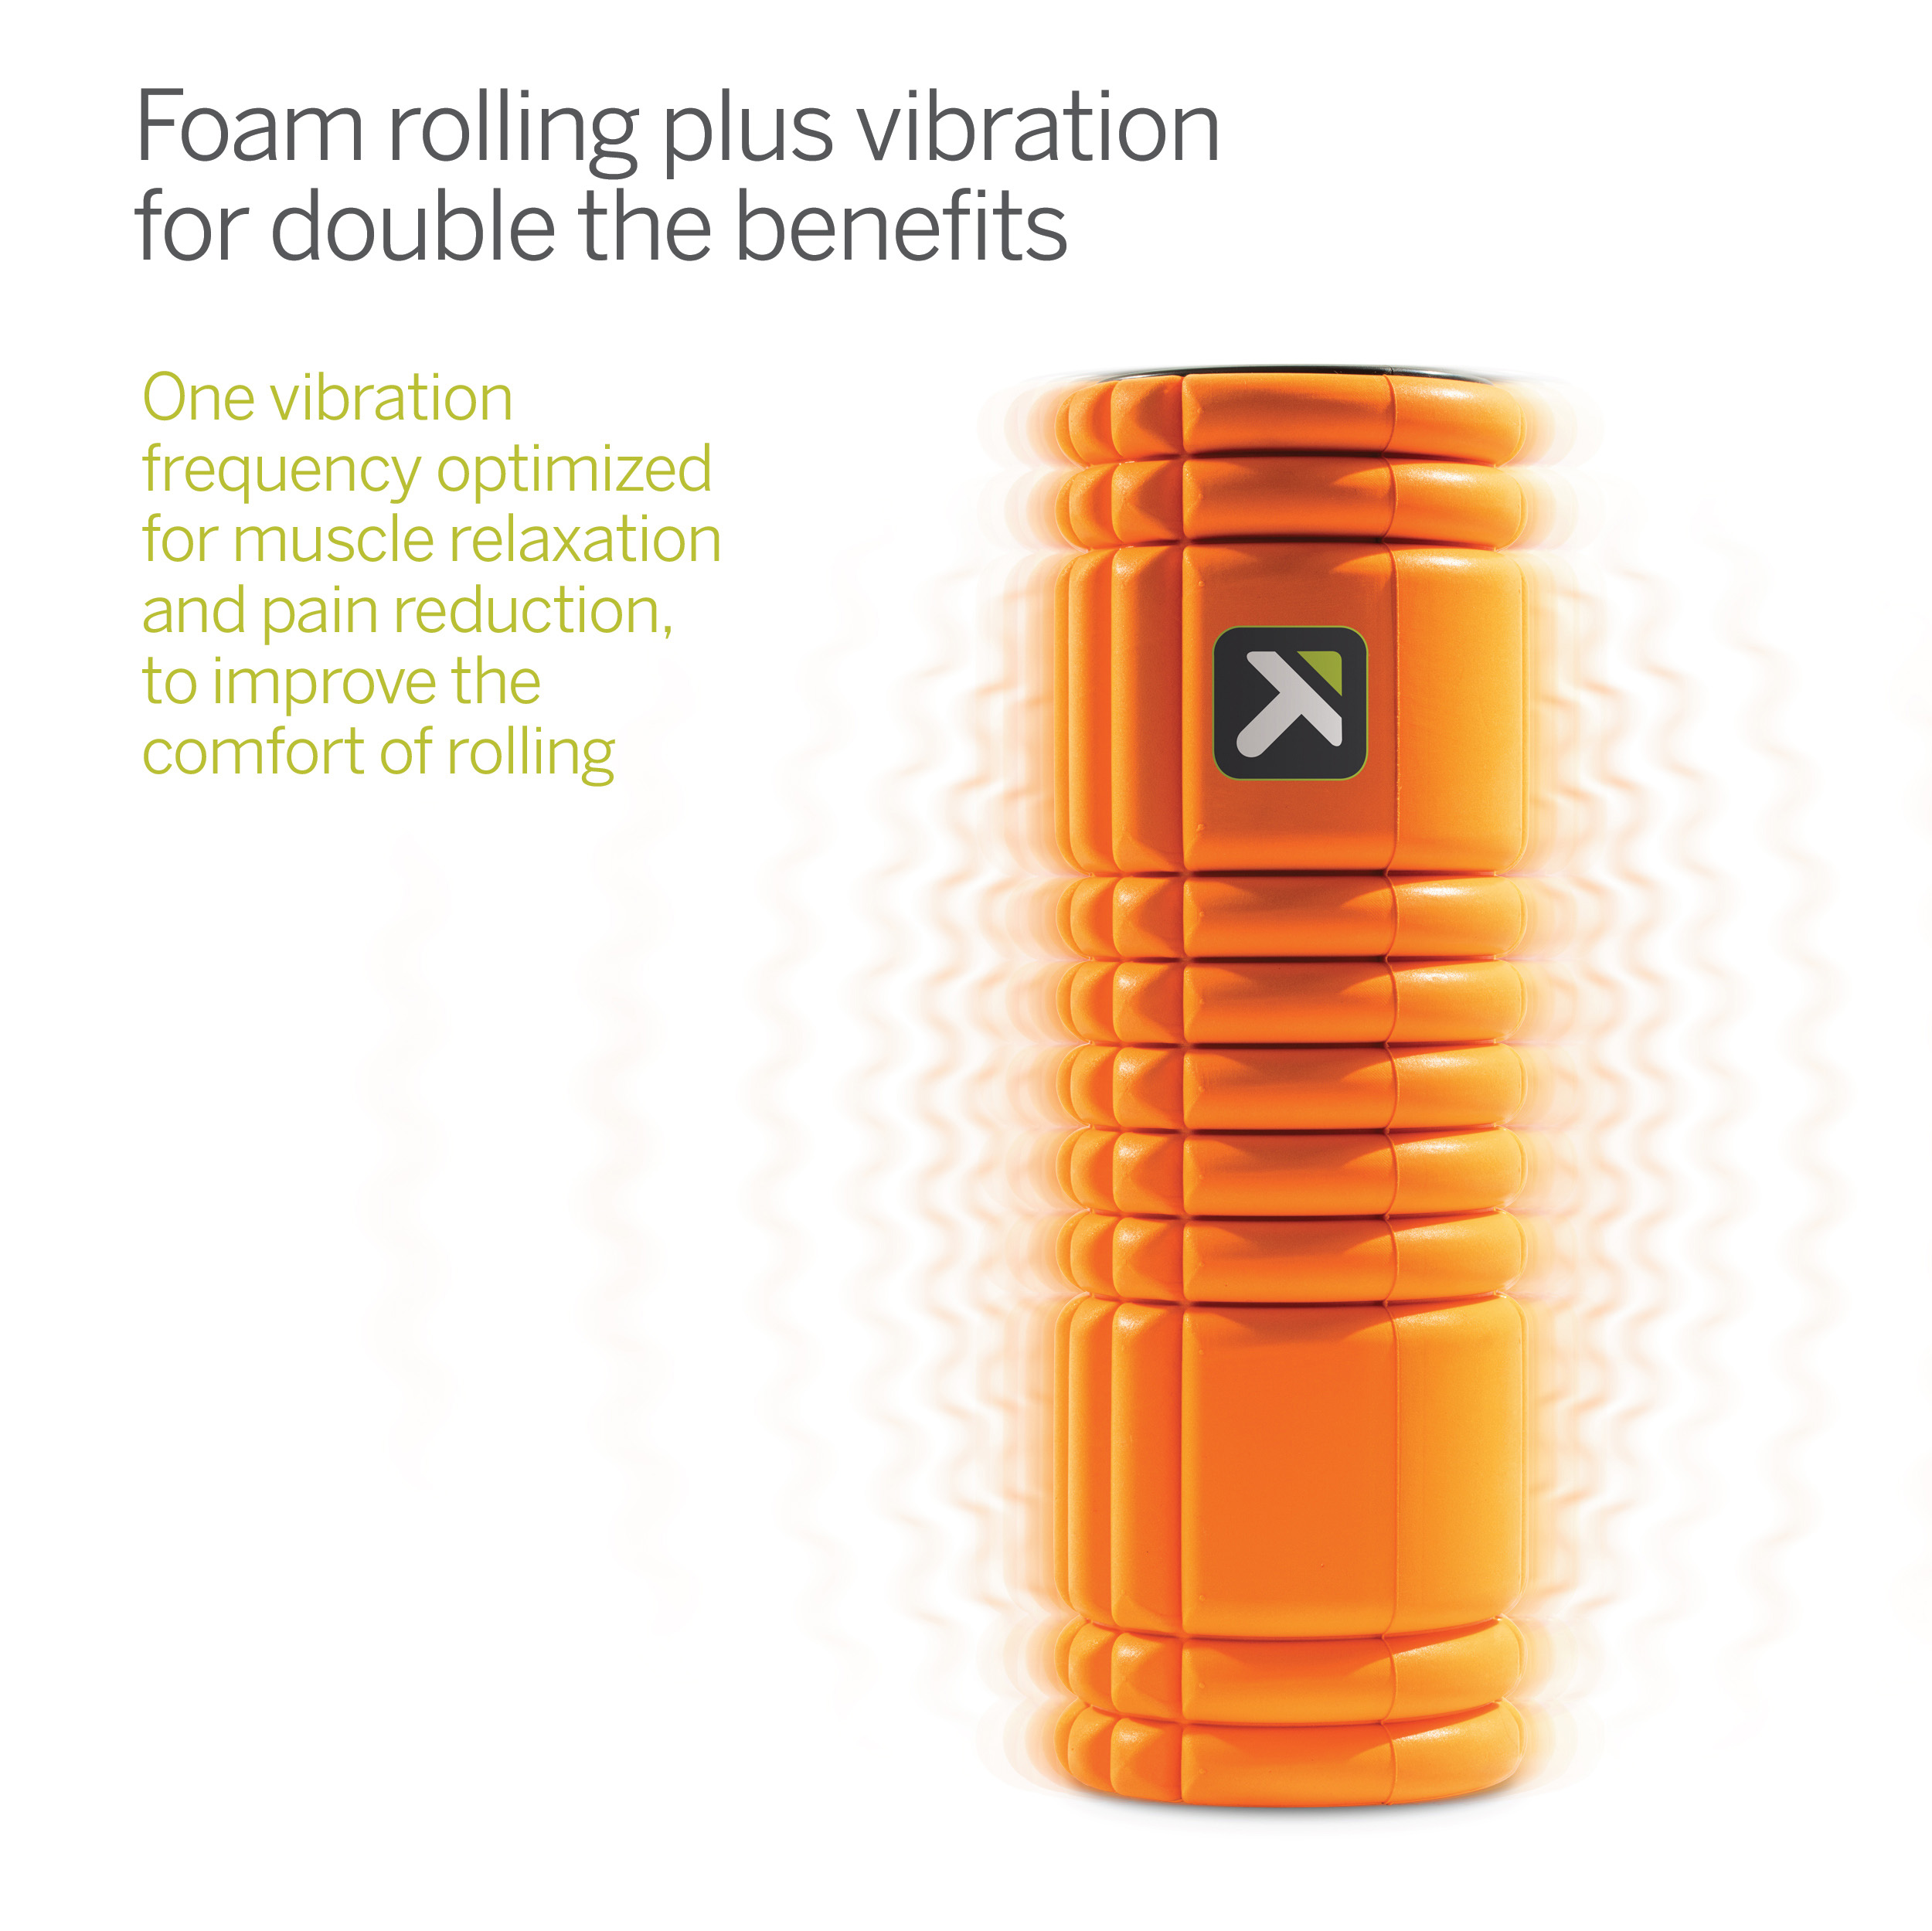 Foam Rolling + Vibration Proven to Relax Muscles